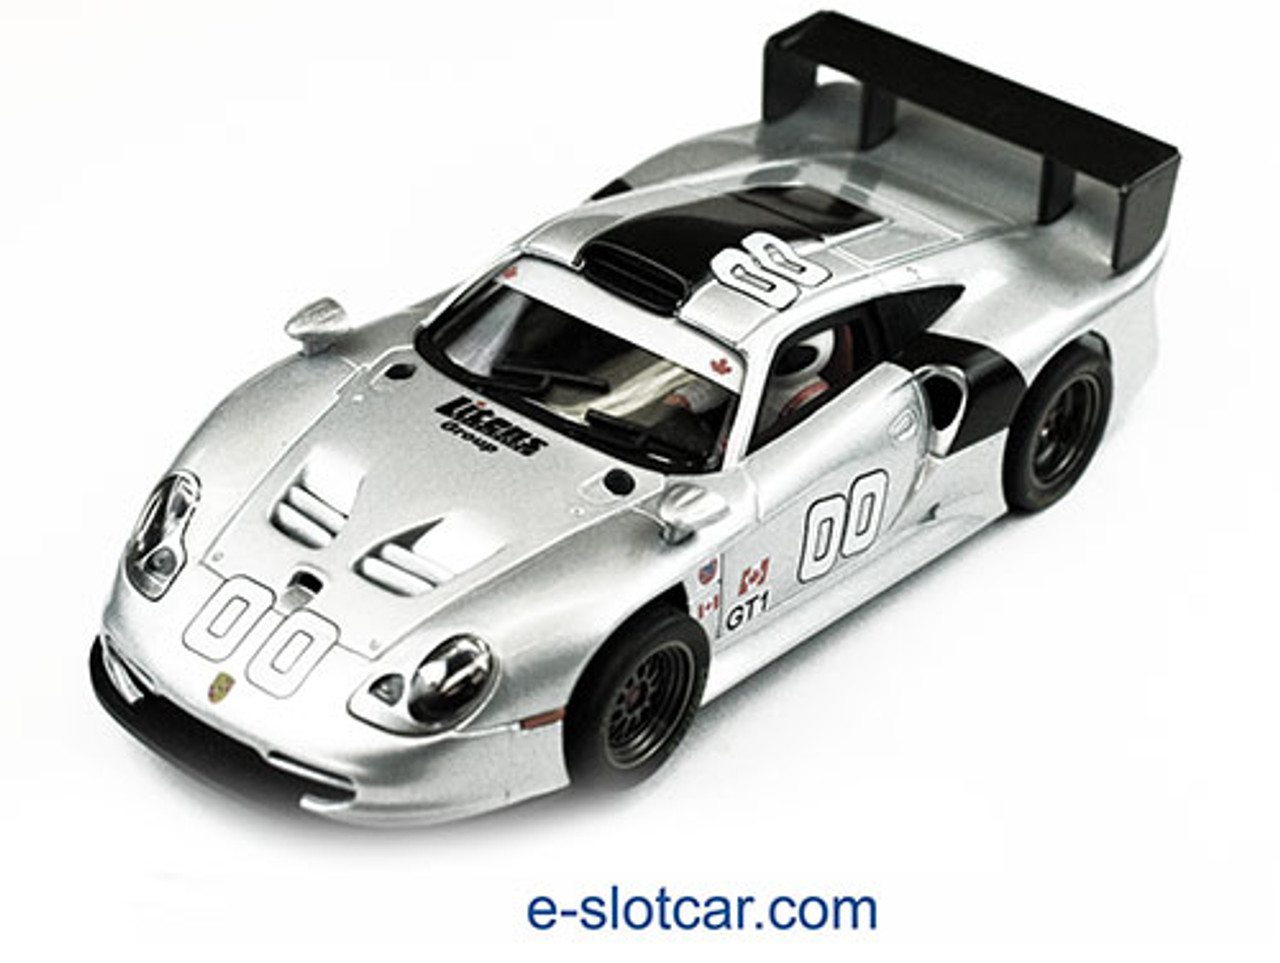 Fly Porsche GT1 EVO - Test Car Daytona 2000 - FLY-A57